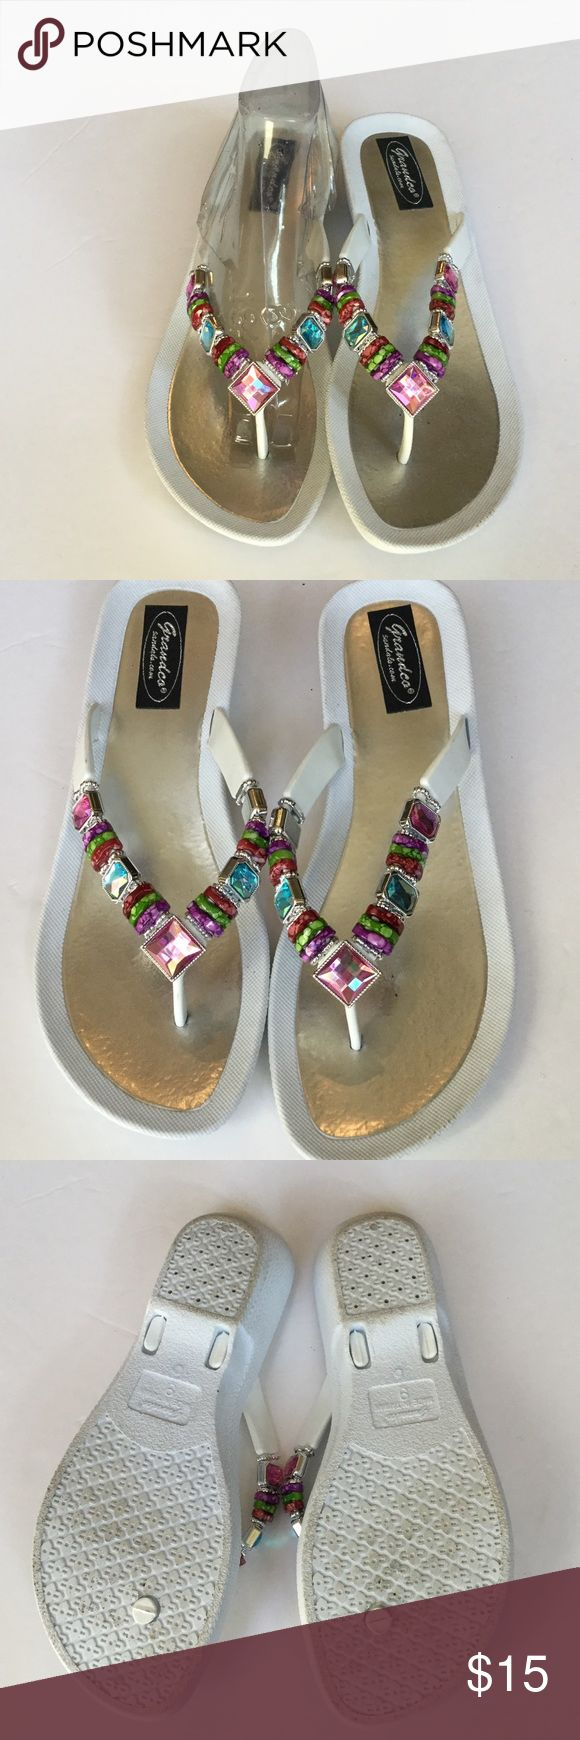 Super Cute Sandals! These Are So Cute! Purchased At A Cute